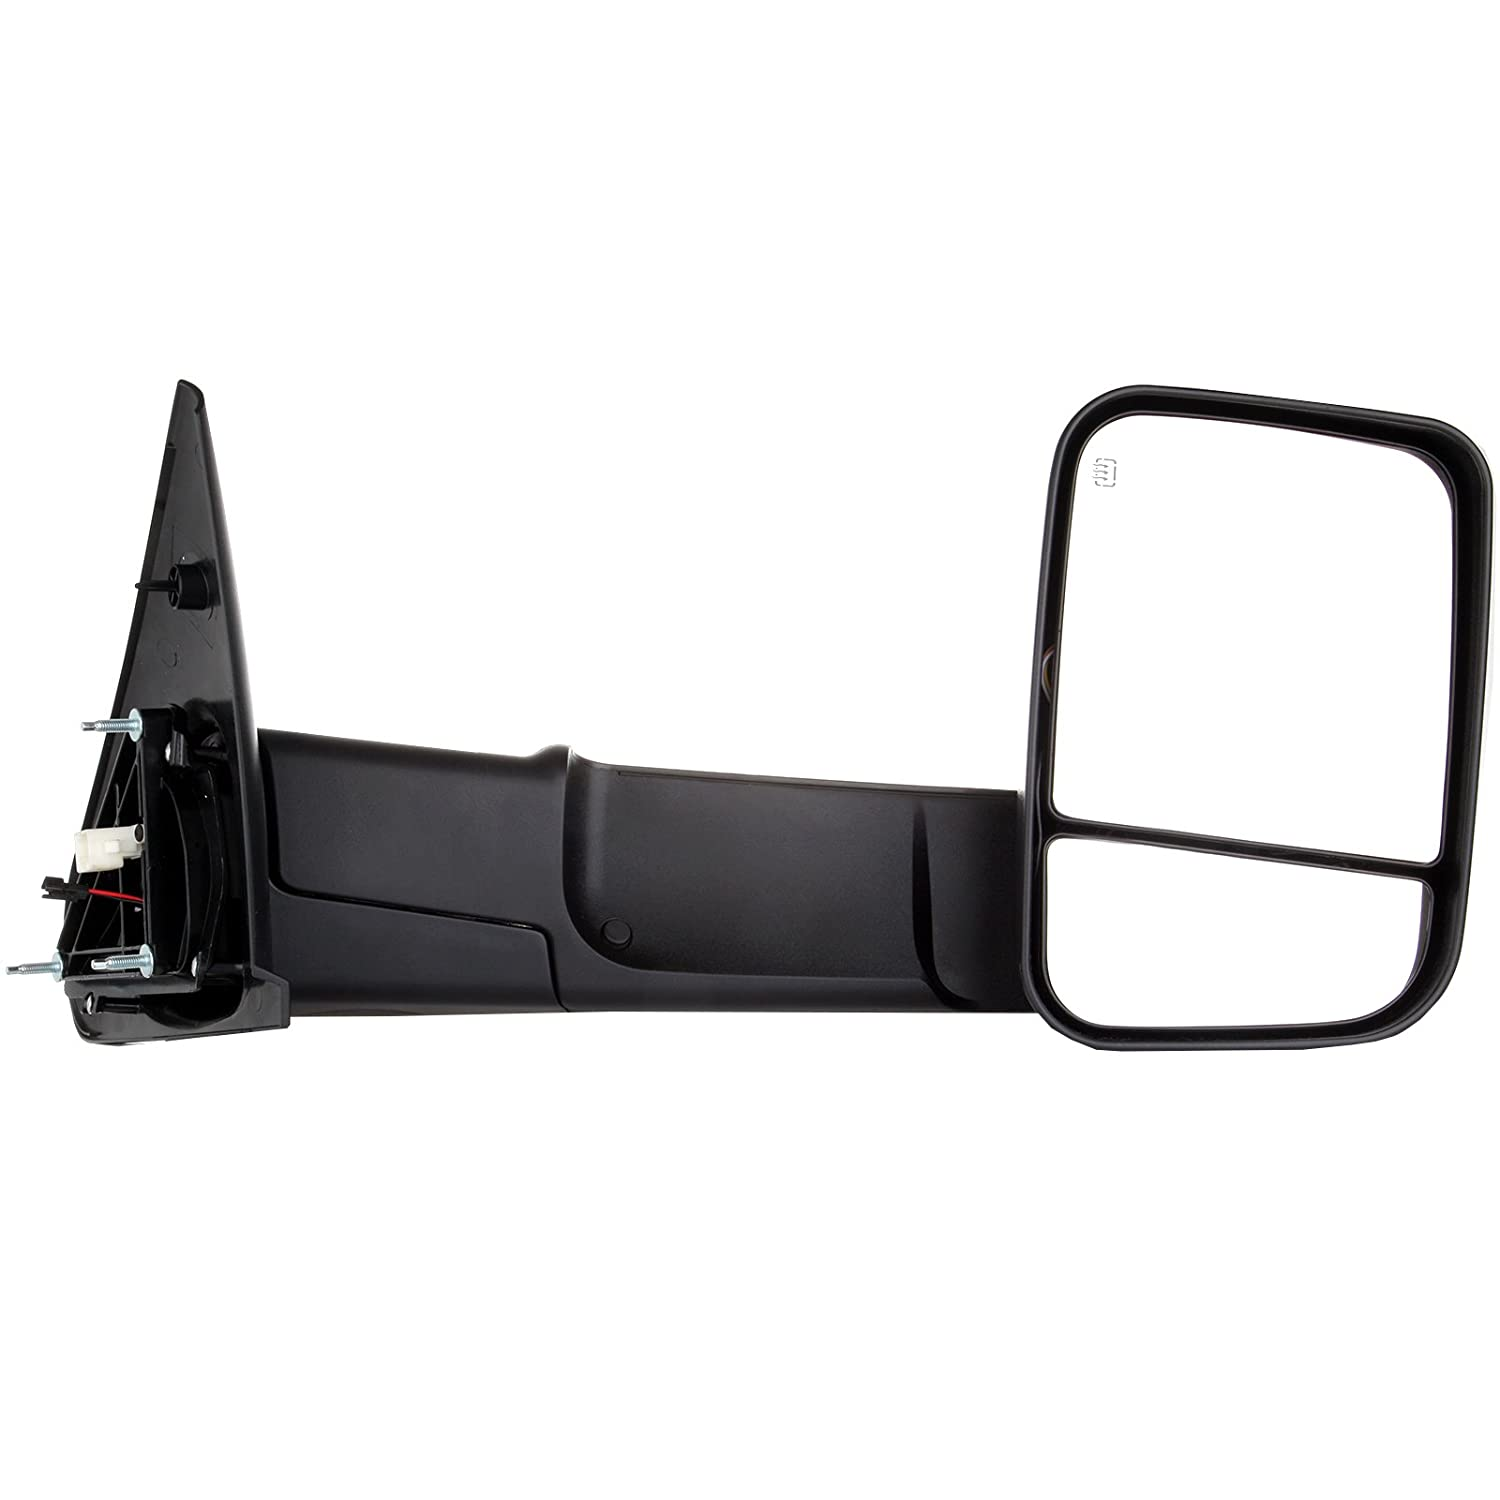 SCITOO Towing Mirrors fit Dodge Ram High Perfitmance Exterior Accessories Mirrors fit 1998-2002 Ram 1500 Ram 2500 Ram 3500 Power Controlling Heated Manual Flipping up Telescoping Features 050724-5206-1727581